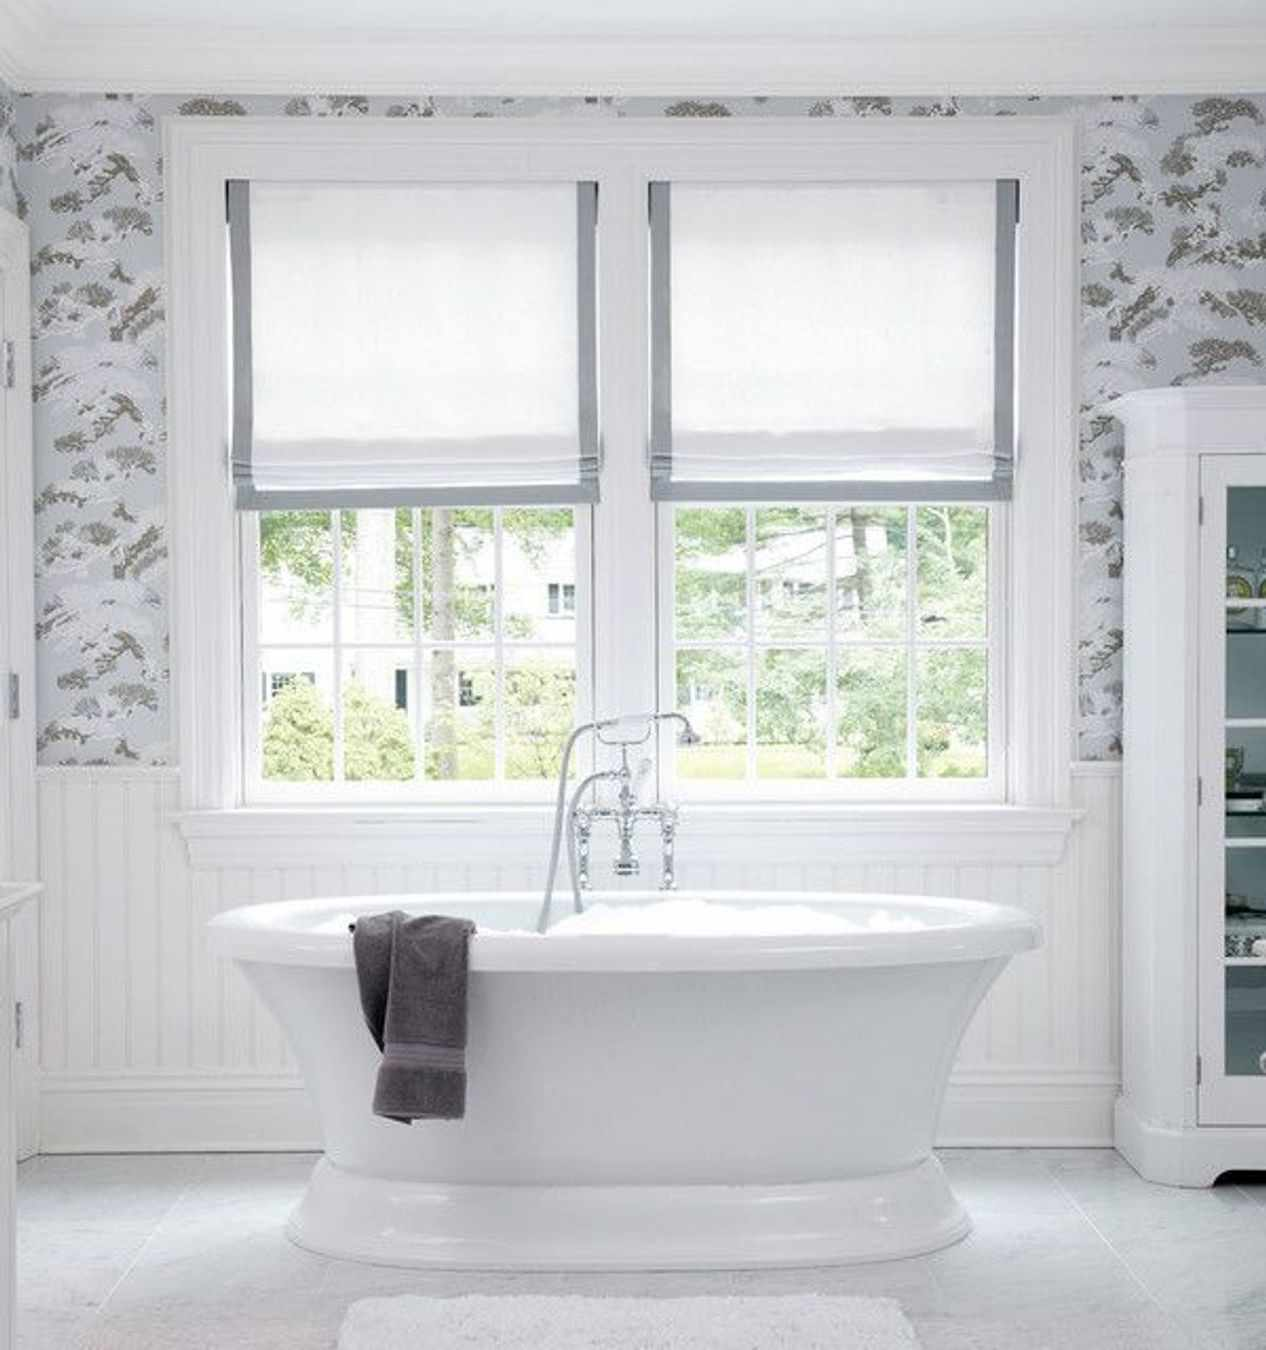 Bathroom window blinds - Grey Bathroom Curtains Nice White And Grey Roman